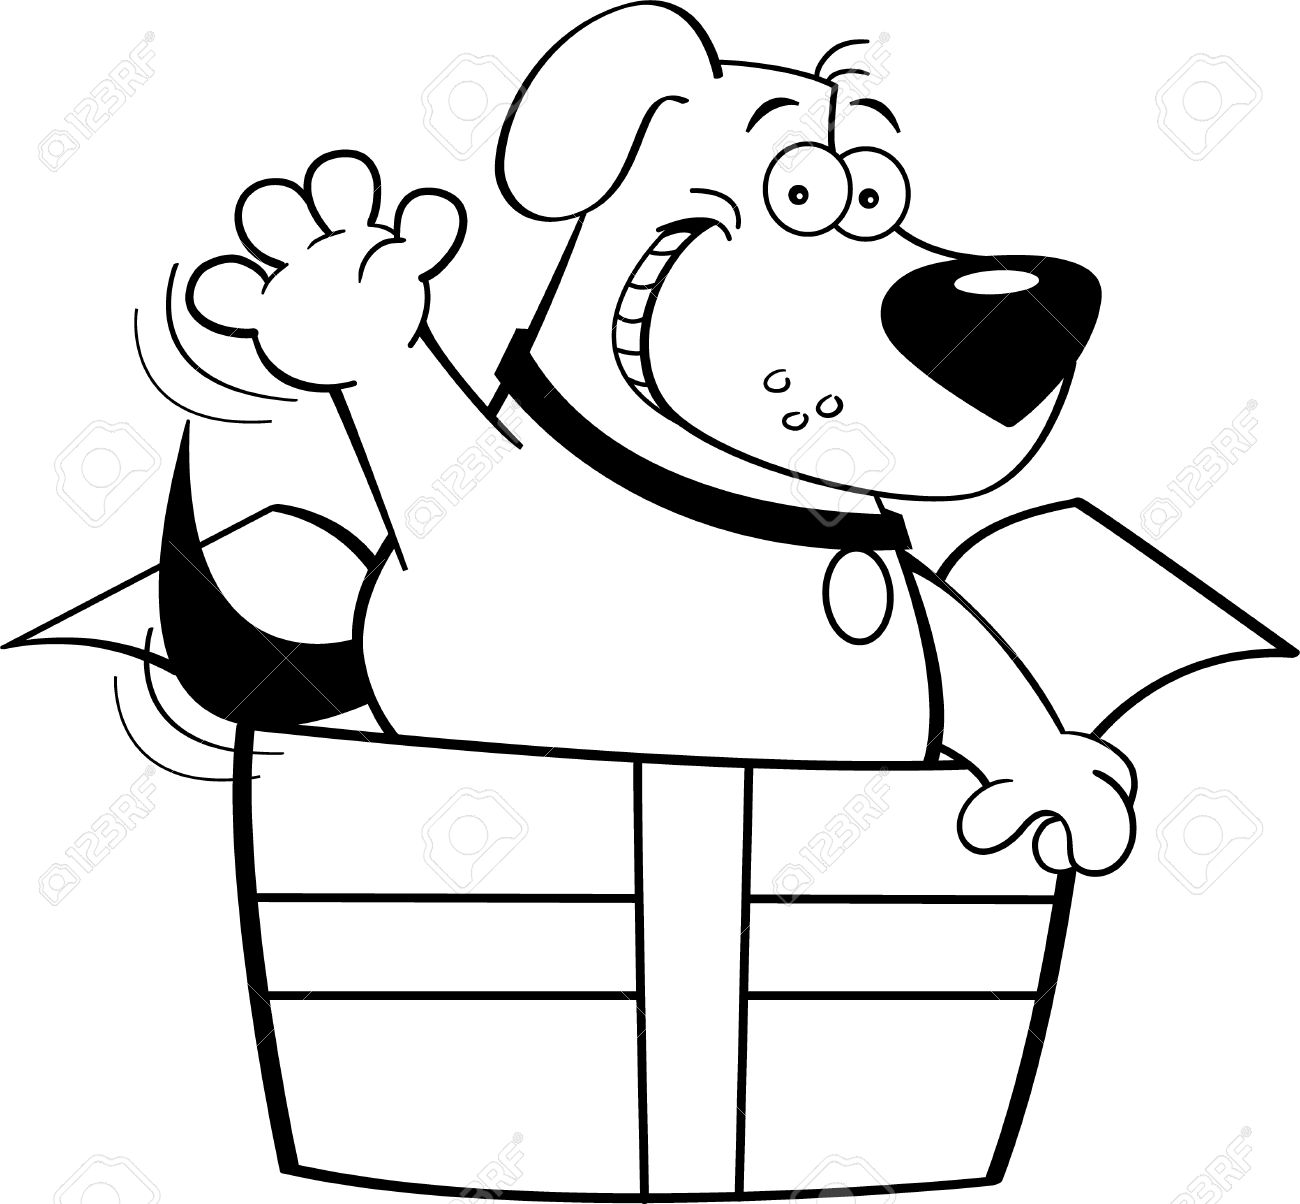 Black And White Illustration Of A Dog Inside A Gift Box Royalty